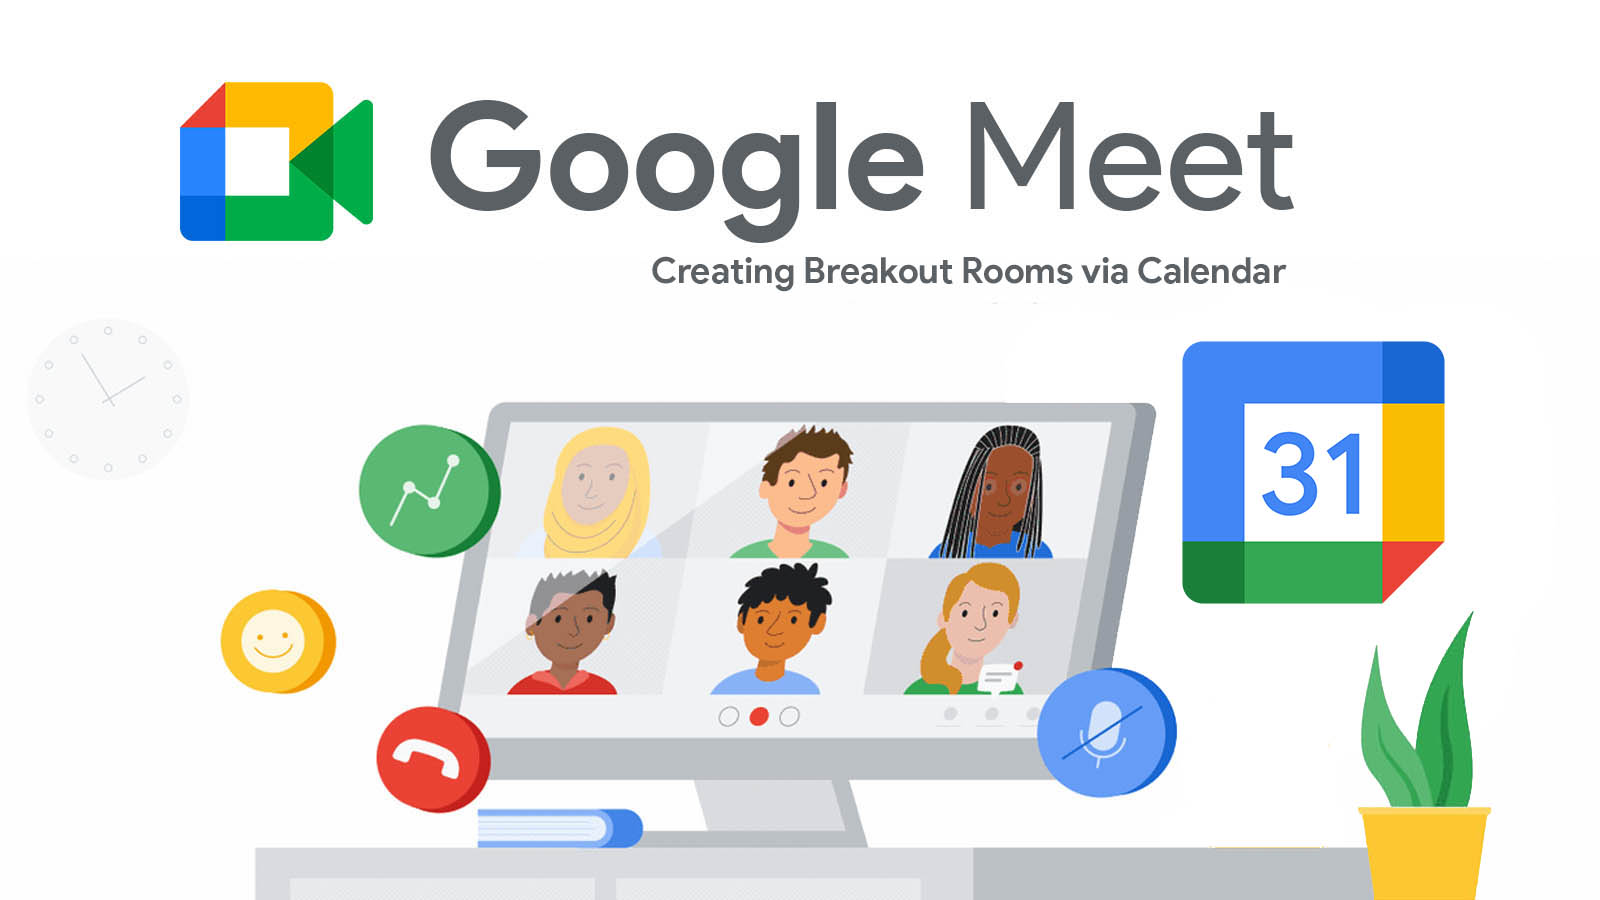 Google Meet now rolling out the ability to set up breakout rooms ahead of time via Calendar